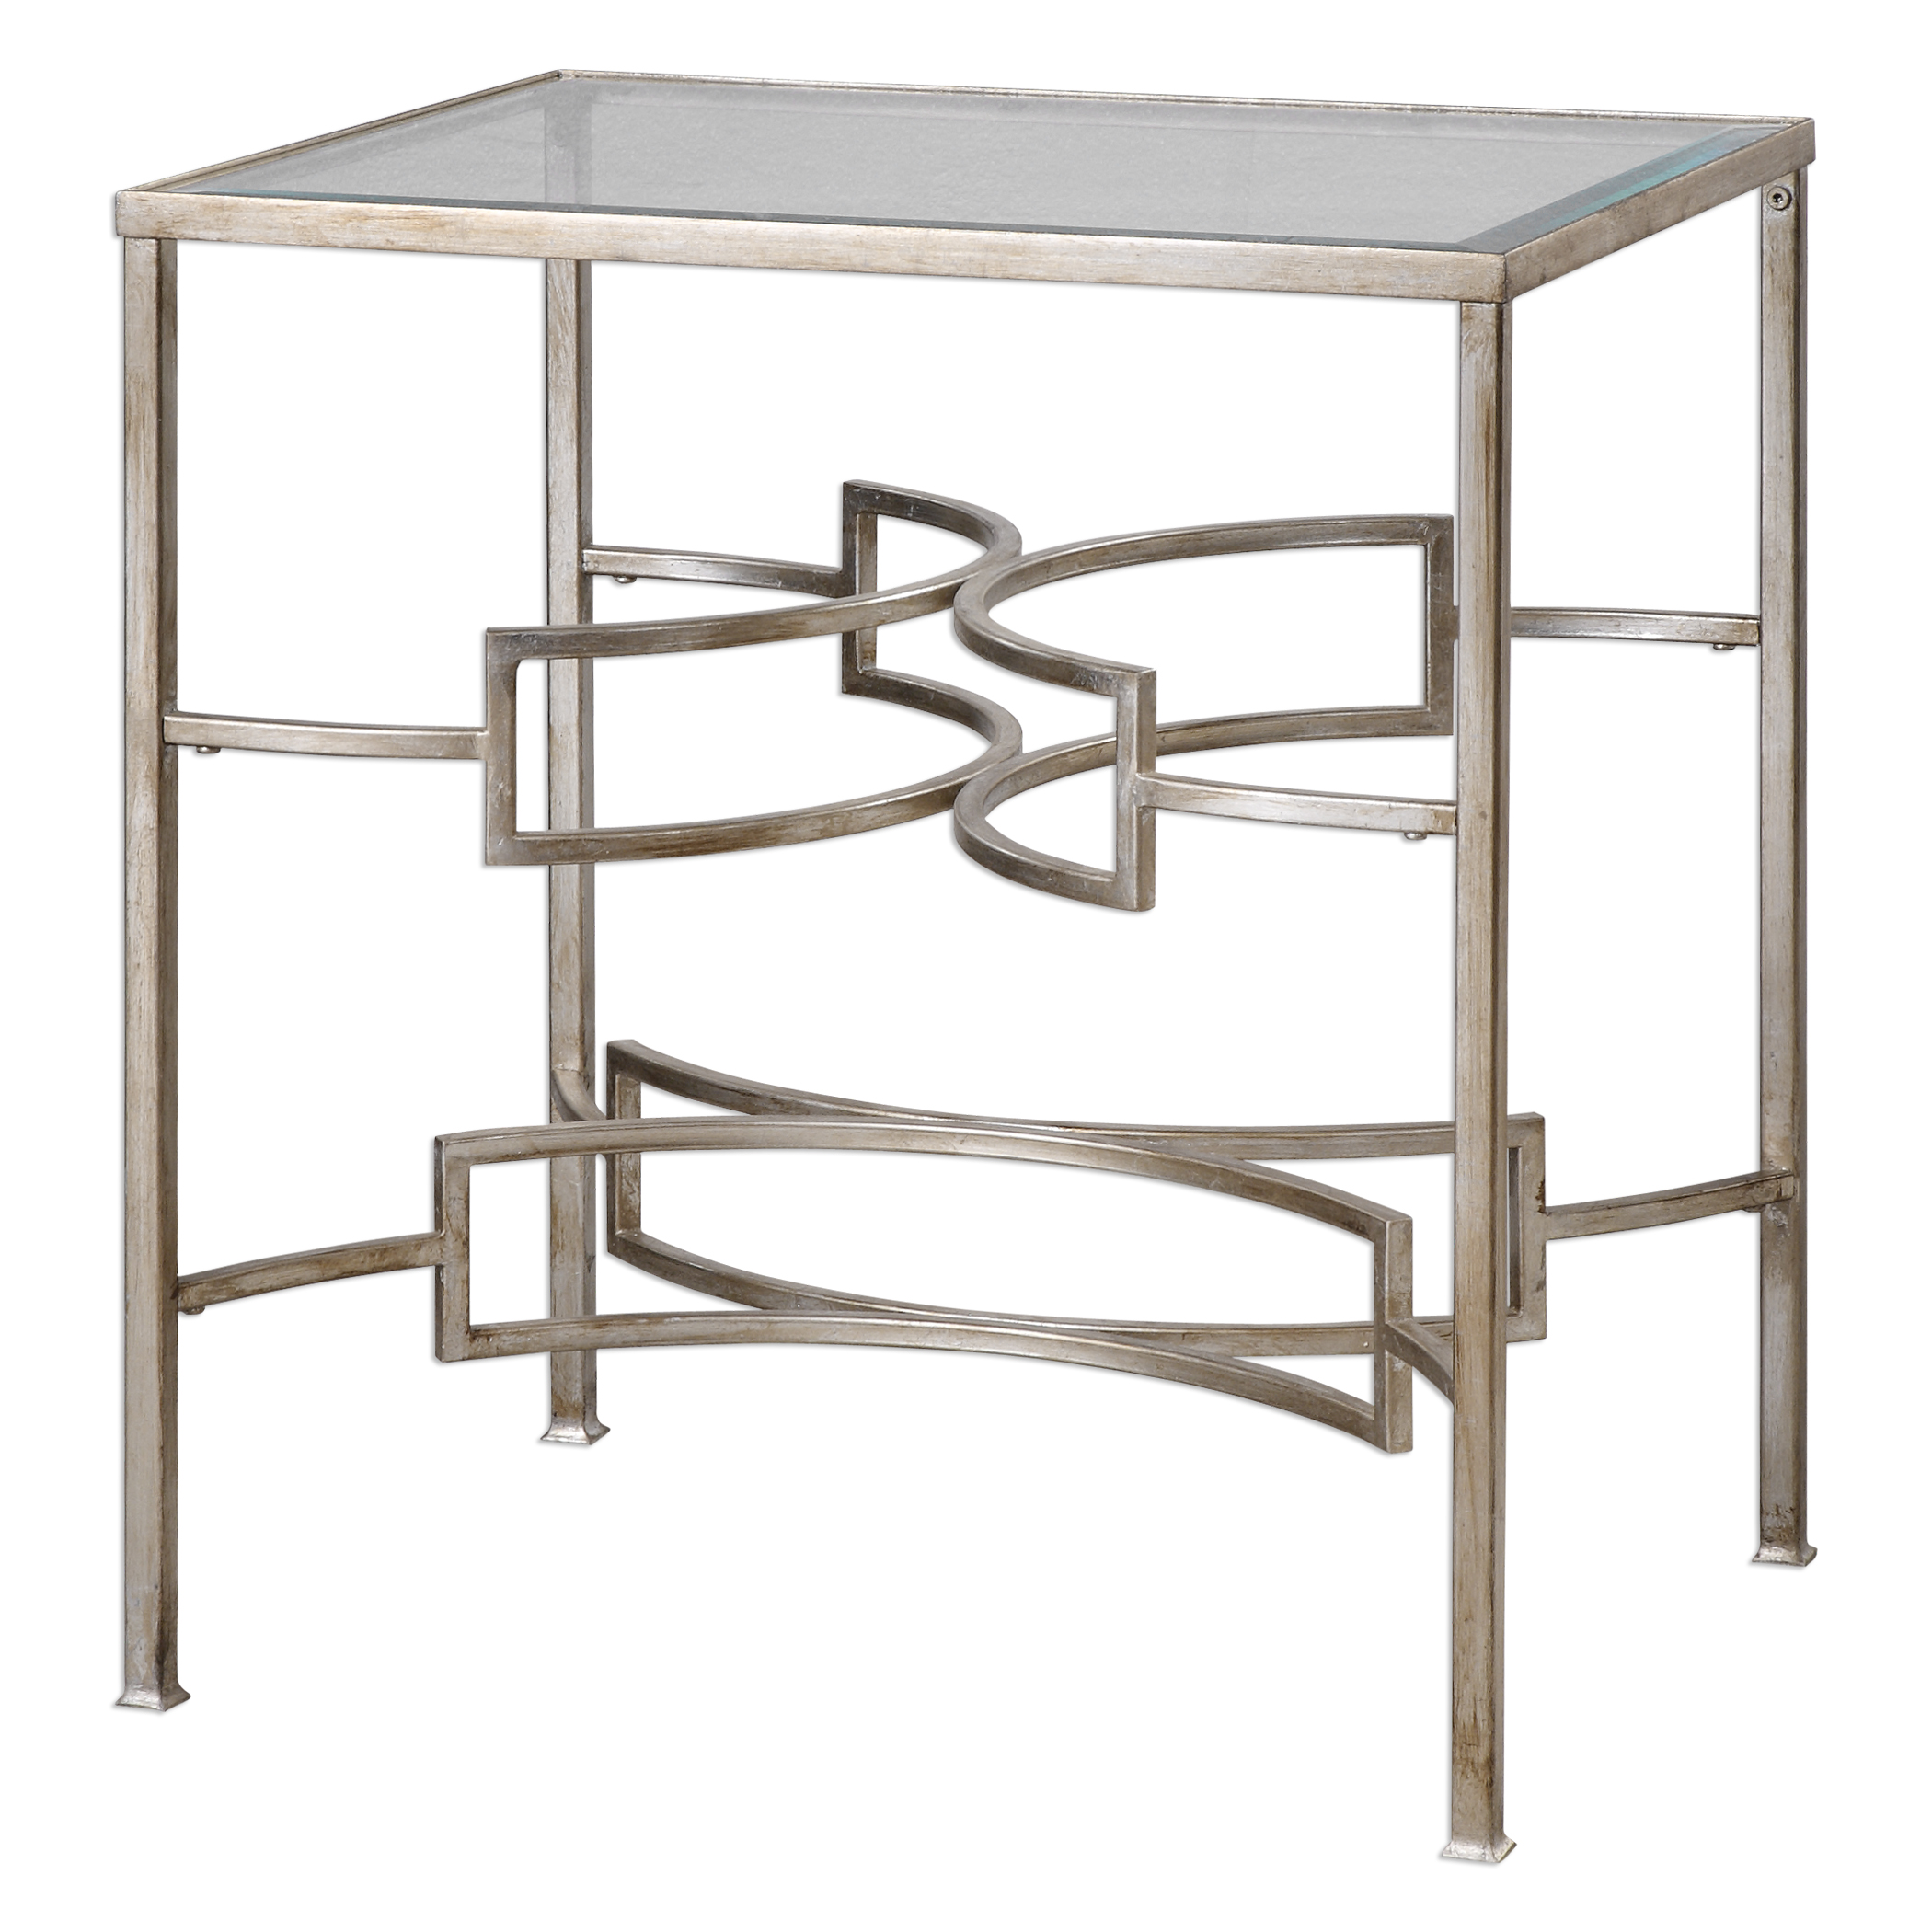 Accent Furniture - Occasional Tables Eilinora Silver End Table by Uttermost at O'Dunk & O'Bright Furniture